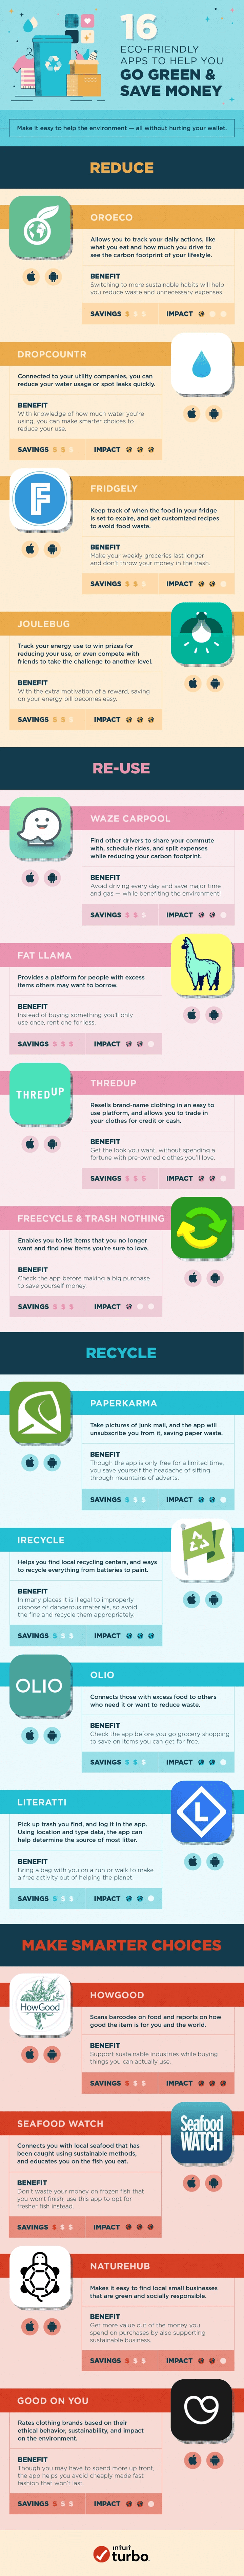 Eco-Friendly Apps